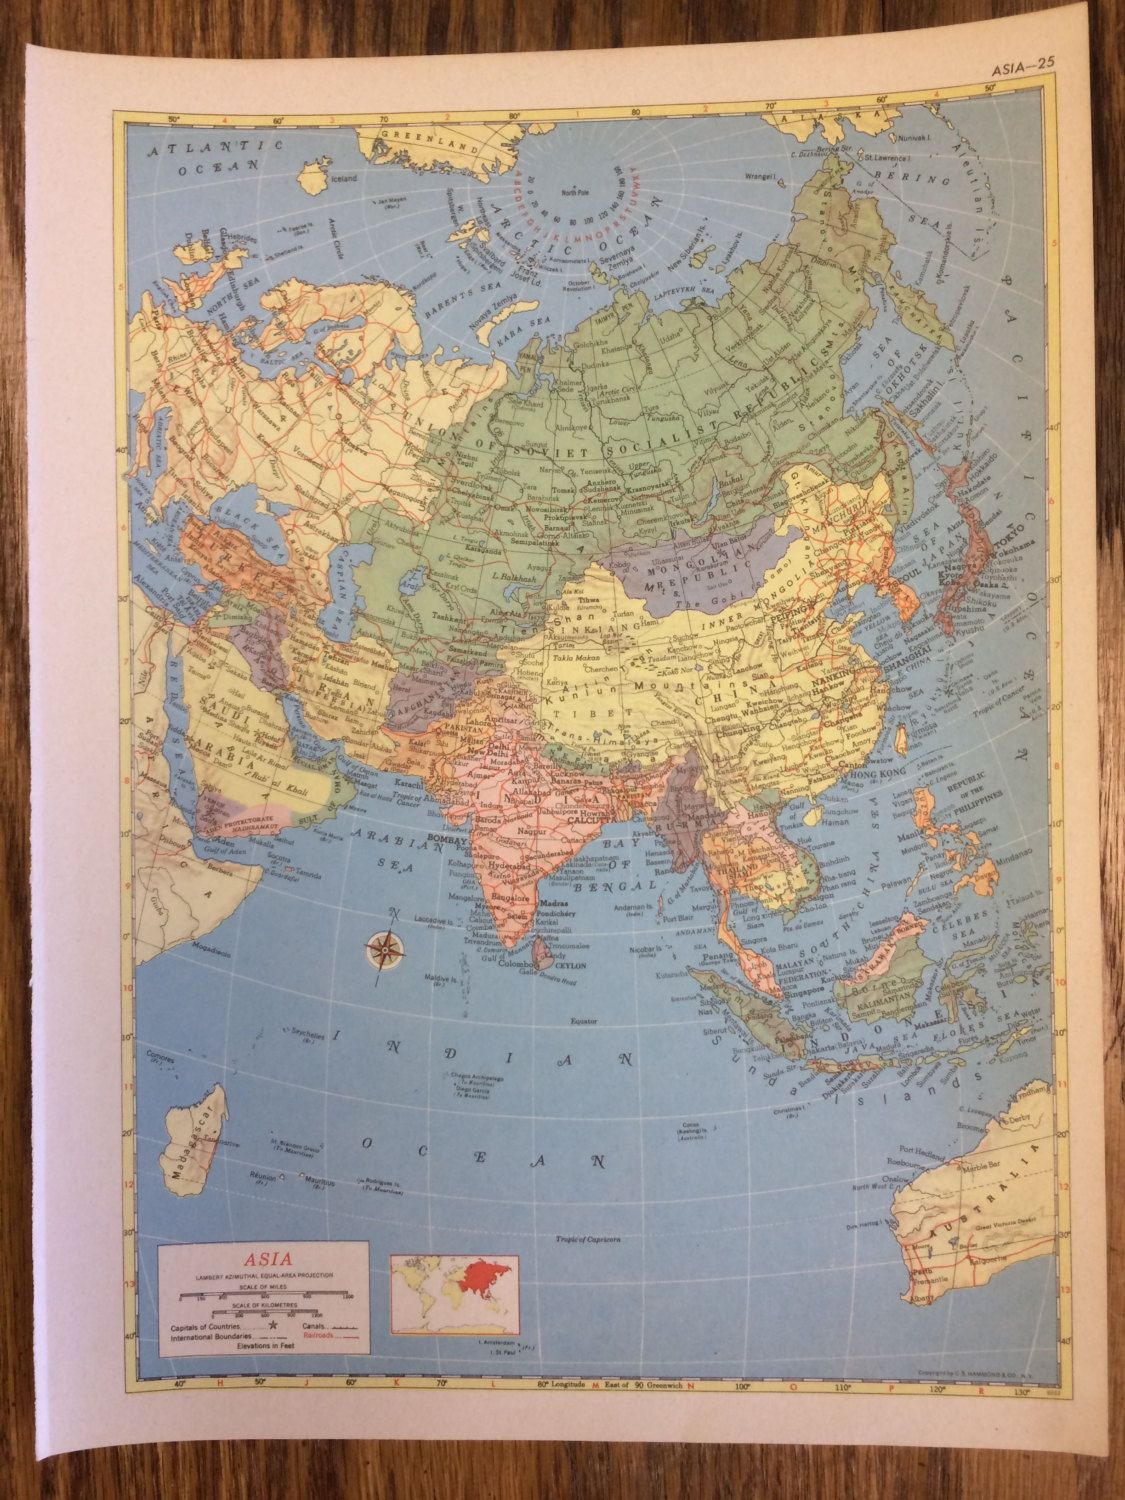 Asia or the near east including turkey saudi arabia iraq iran asia or the near east including turkey saudi arabia iraq iran afghanistan large map 1955 hammonds new supreme world atlas vintage gumiabroncs Image collections